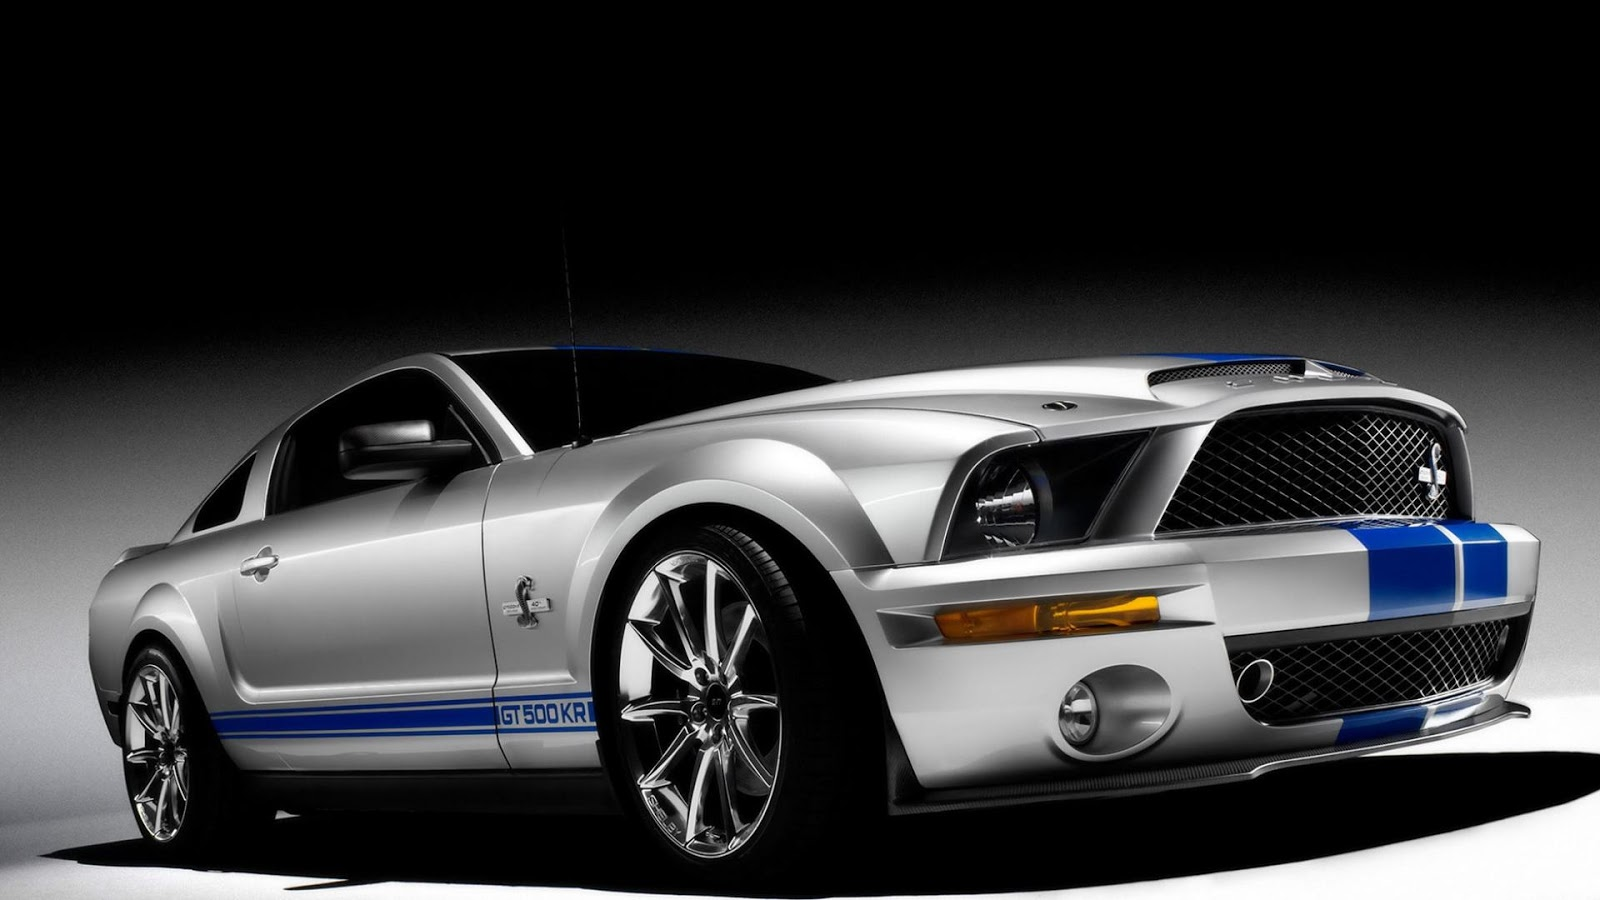 Free 3d wallpapers download hd wallpapers cars 20 wallpaper - Car desktop wallpaper ...